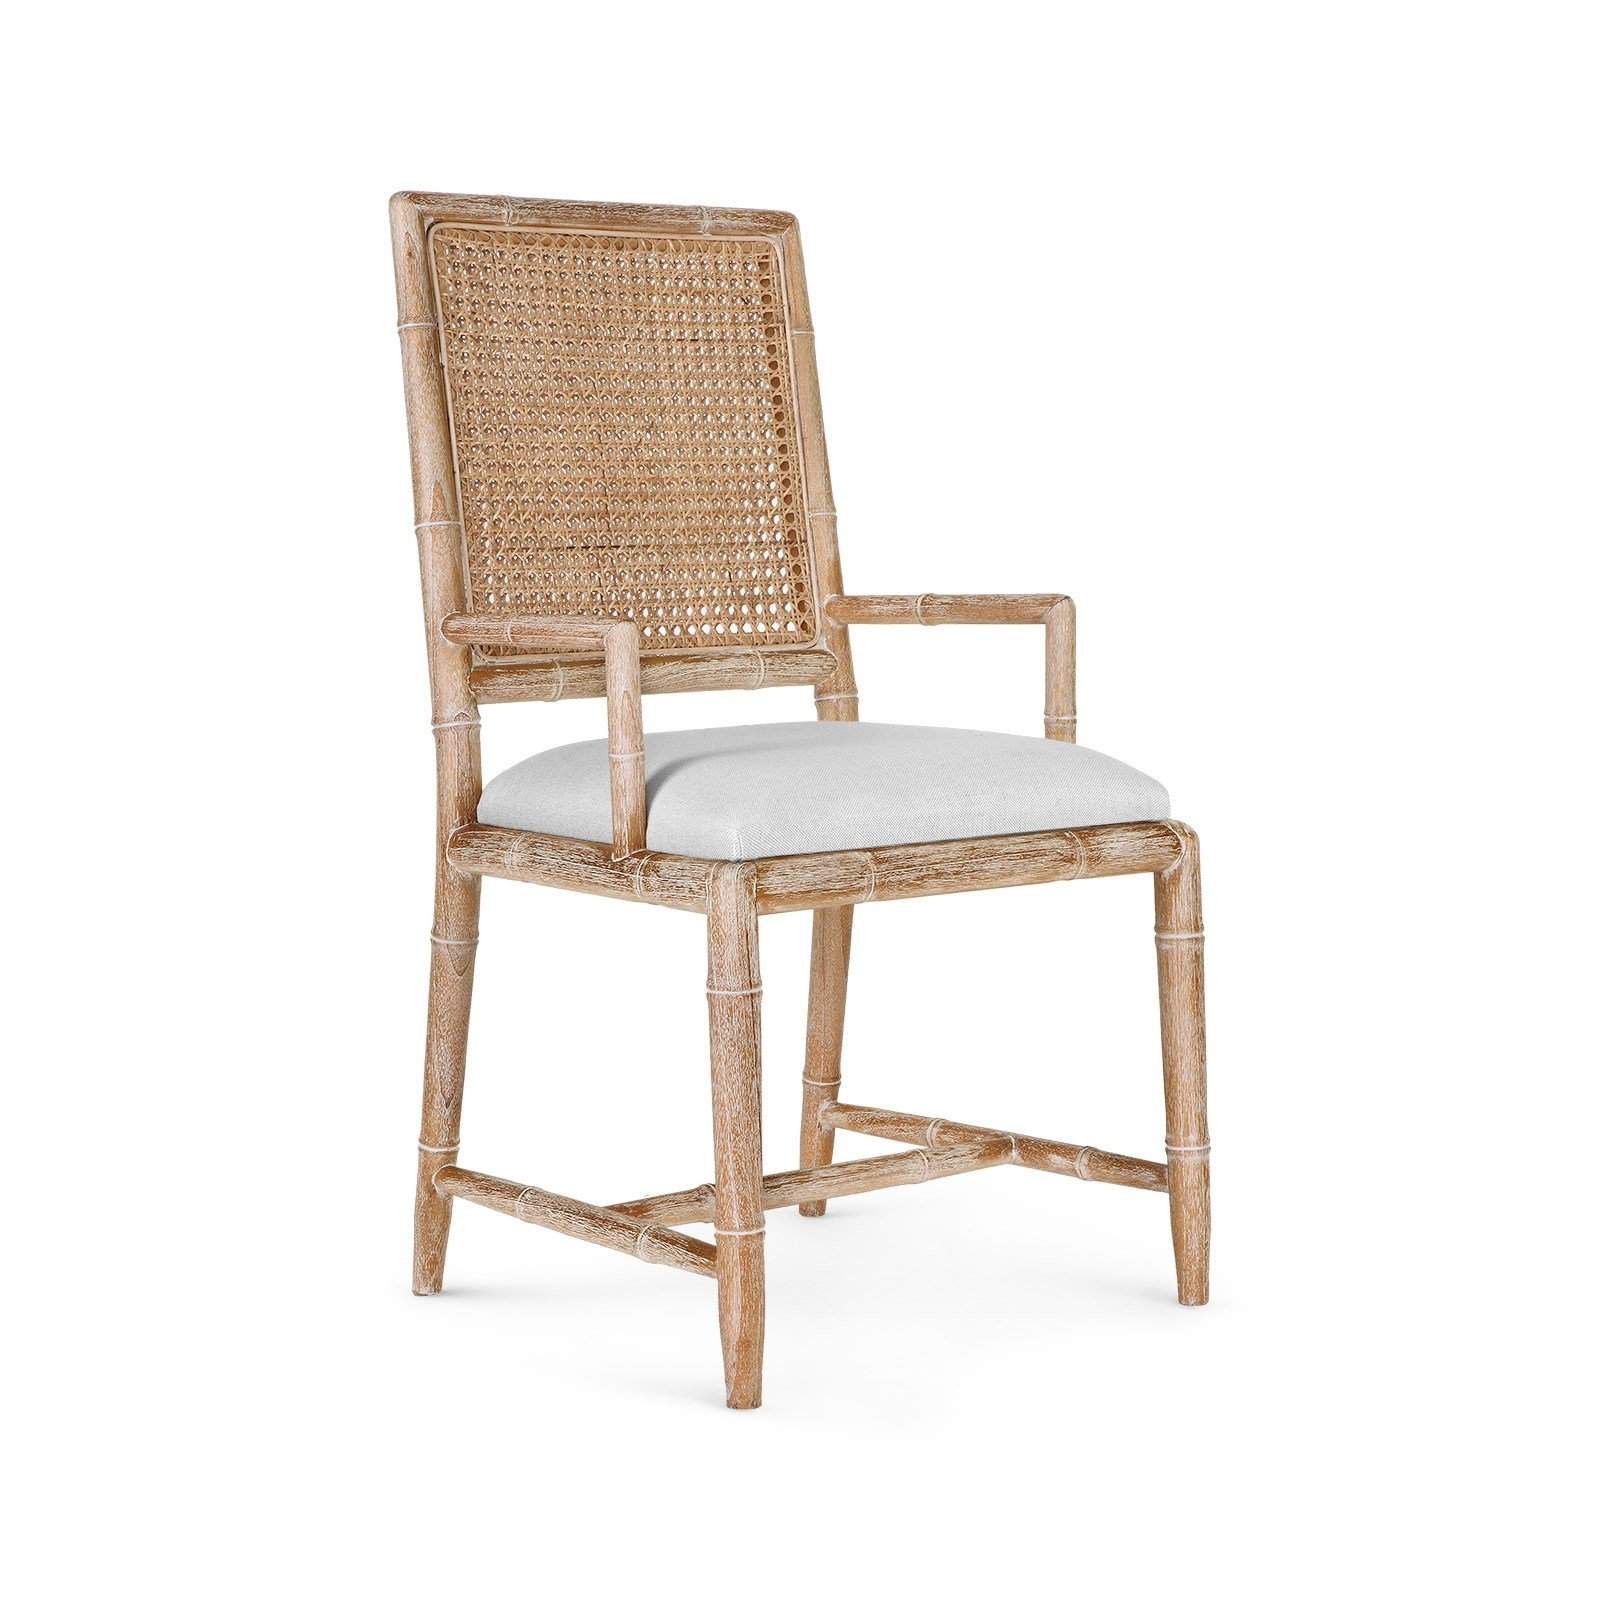 Bungalow 5 - AUBREY ARMCHAIR in NATURAL